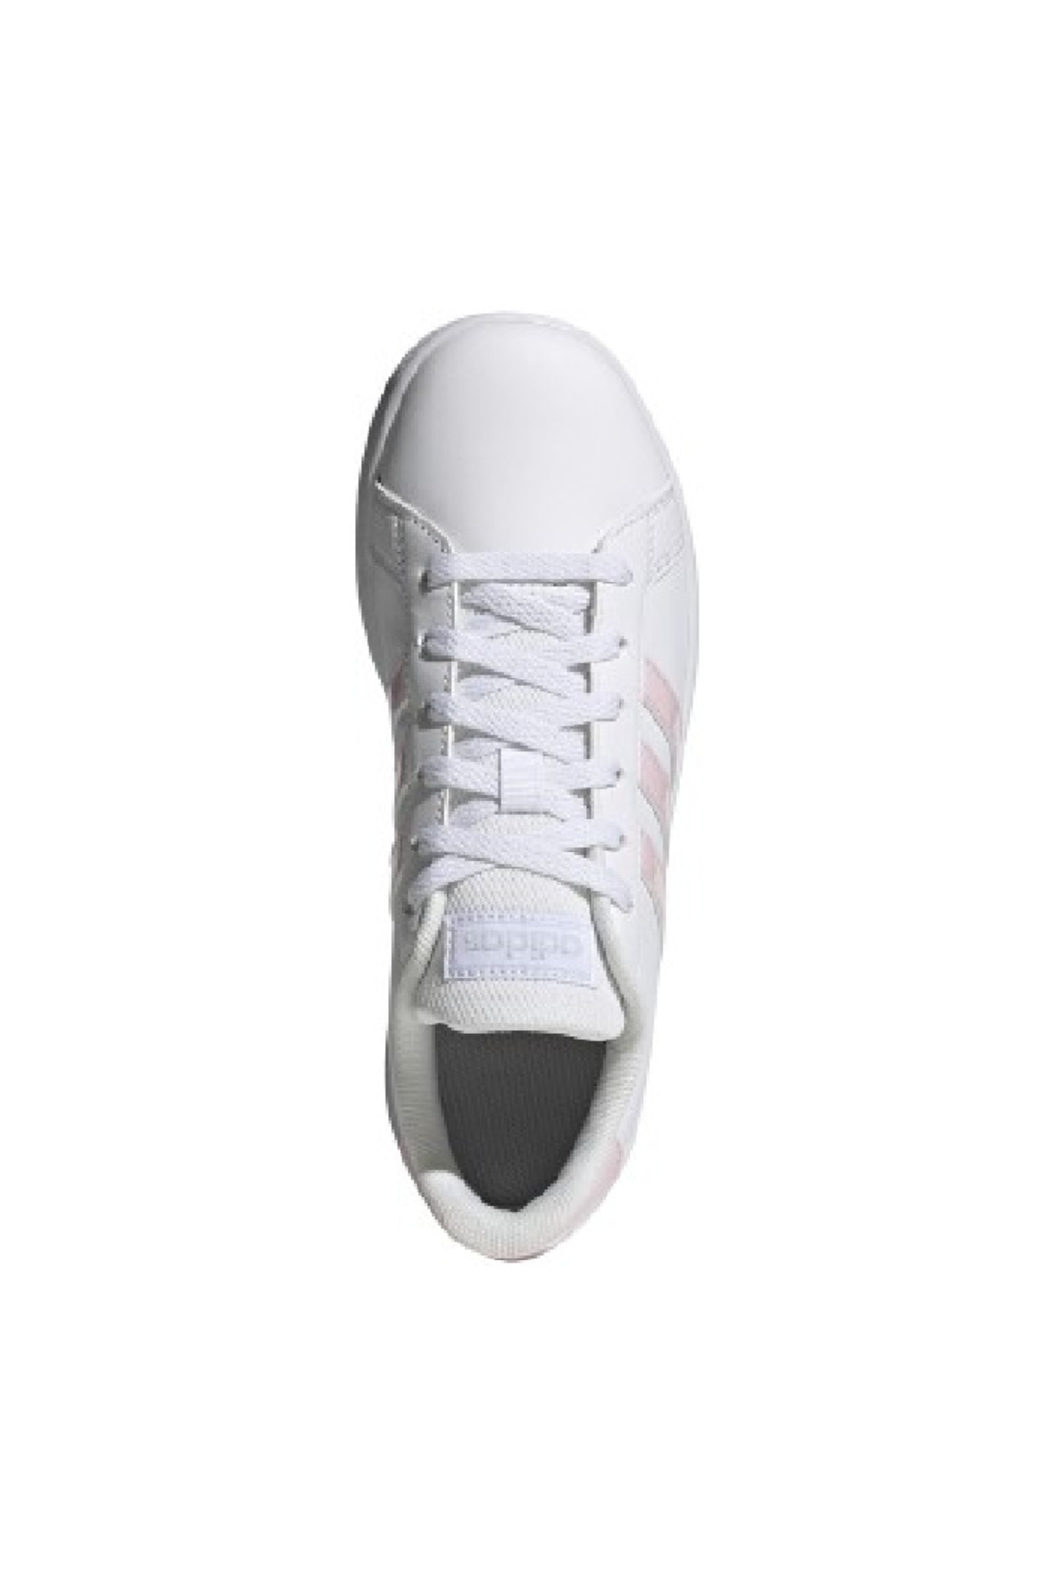 adidas Adidas Kids Grand Court in Future White/Clear Pink/Halo Blue - Front Full Image